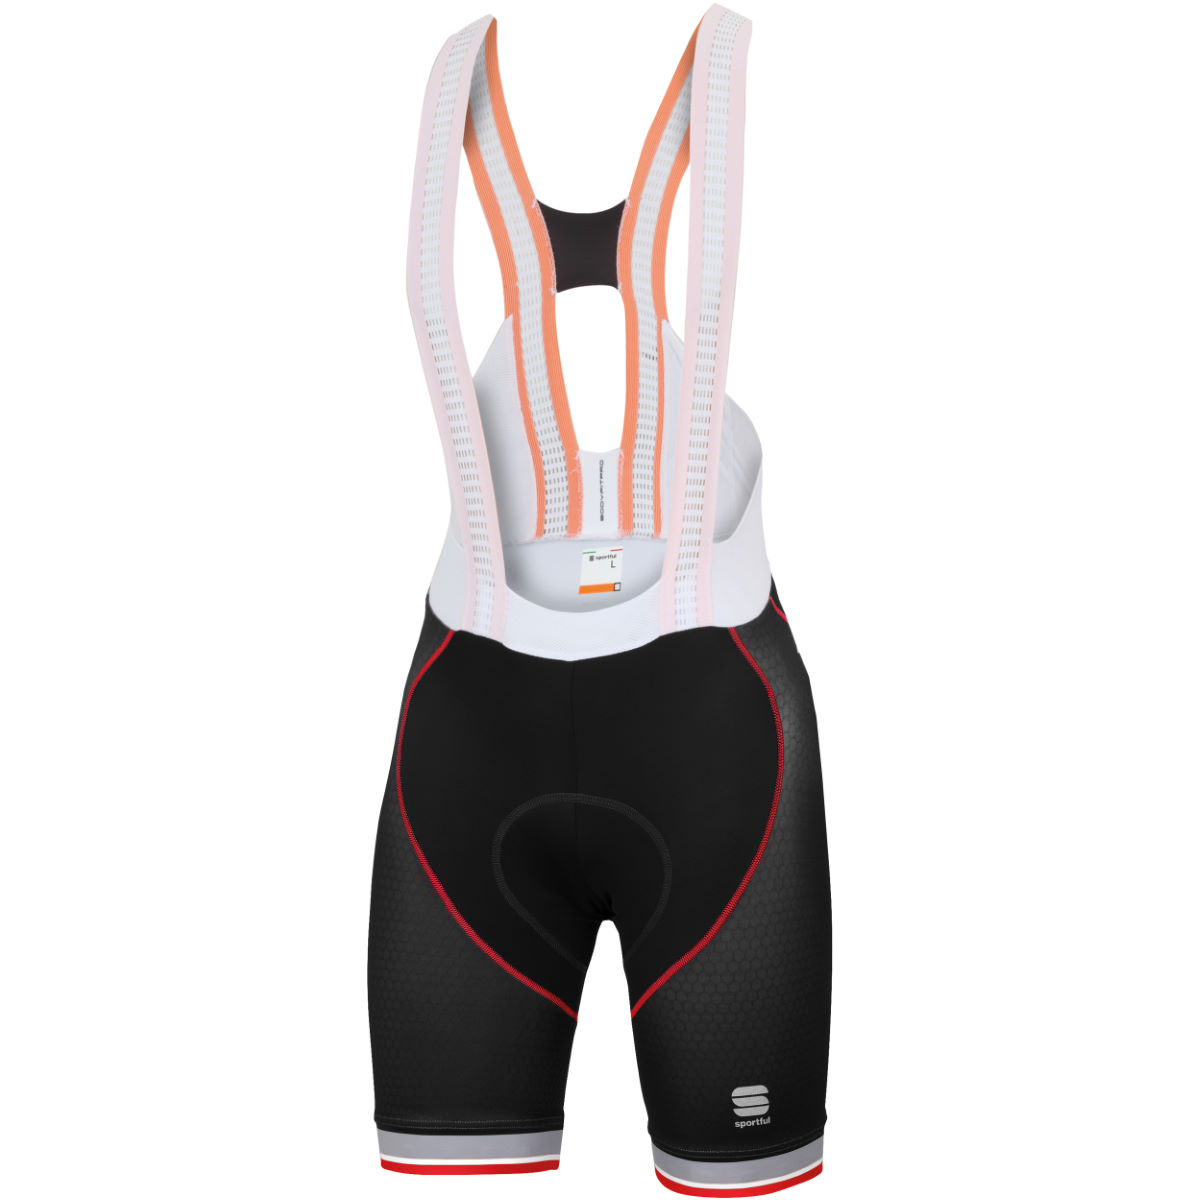 Sportful Limited Edition BodyFit Pro Bib Shorts